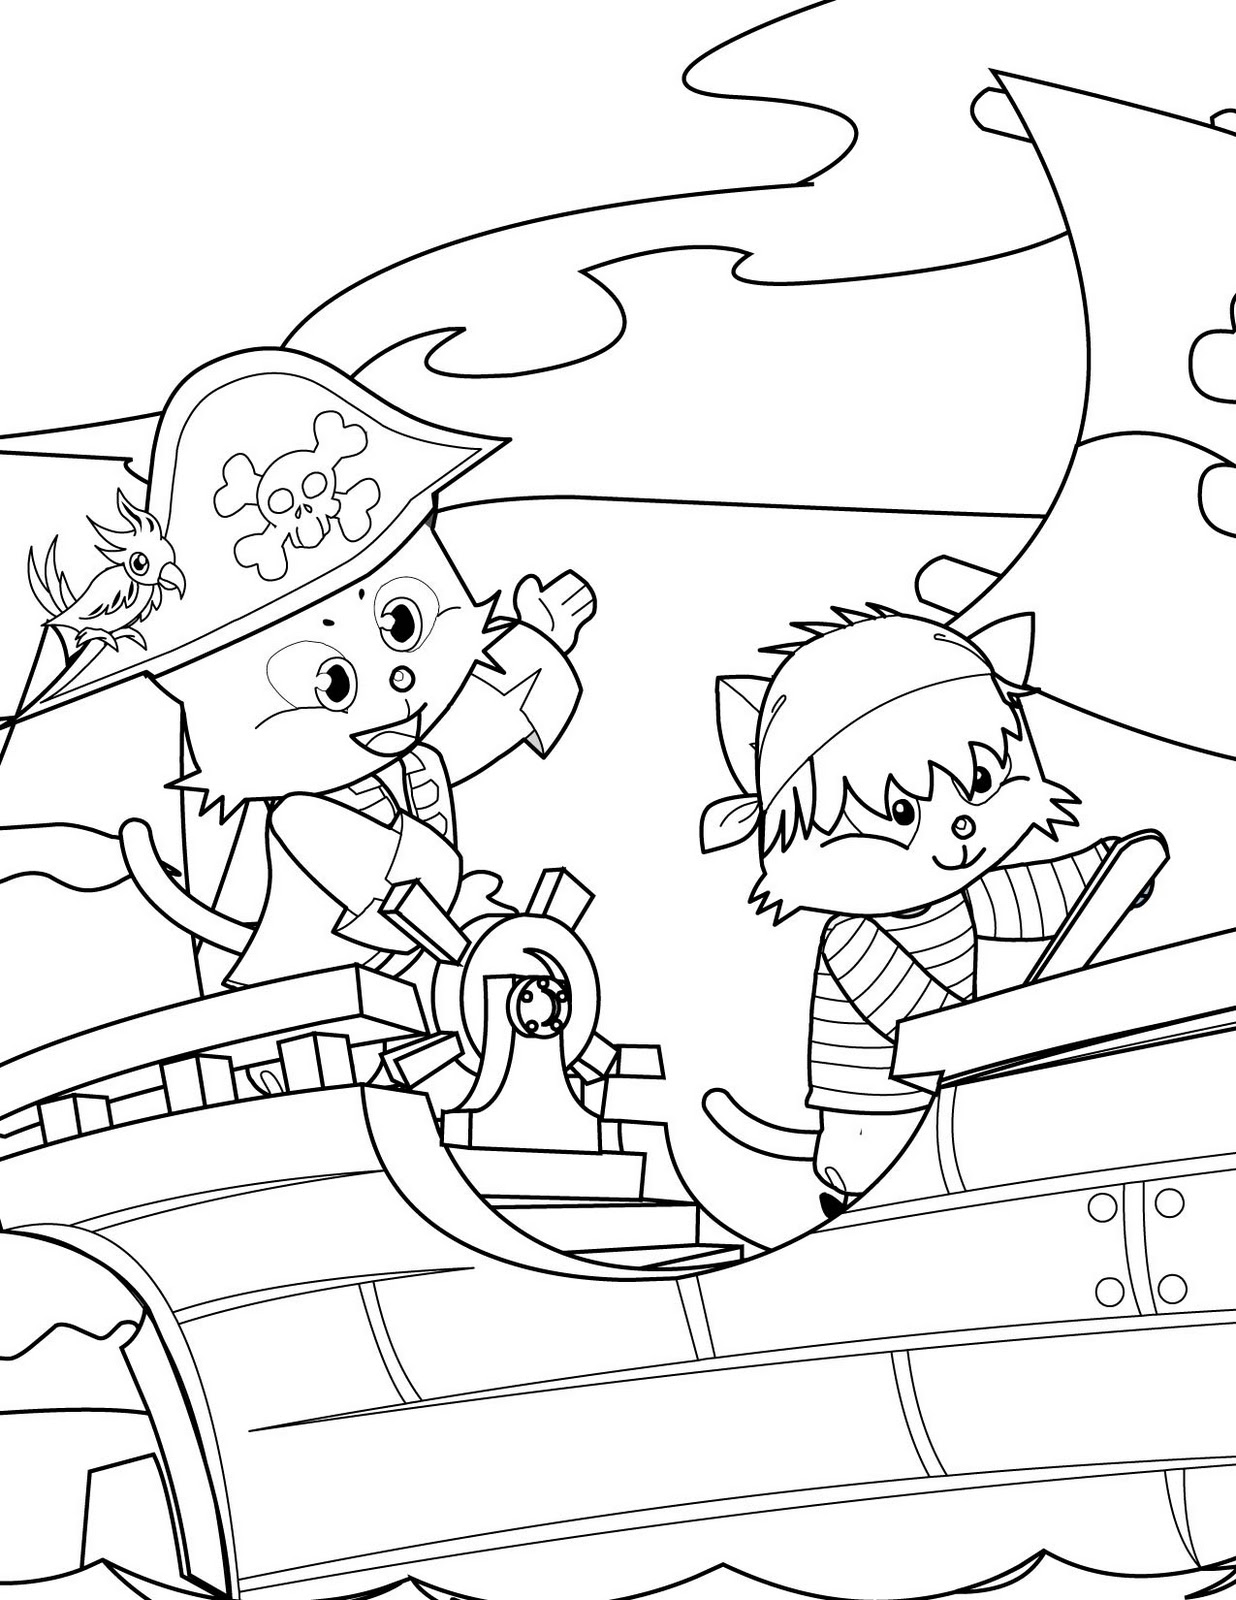 blog creation2: 10 Pirates Coloring Pages to Print and